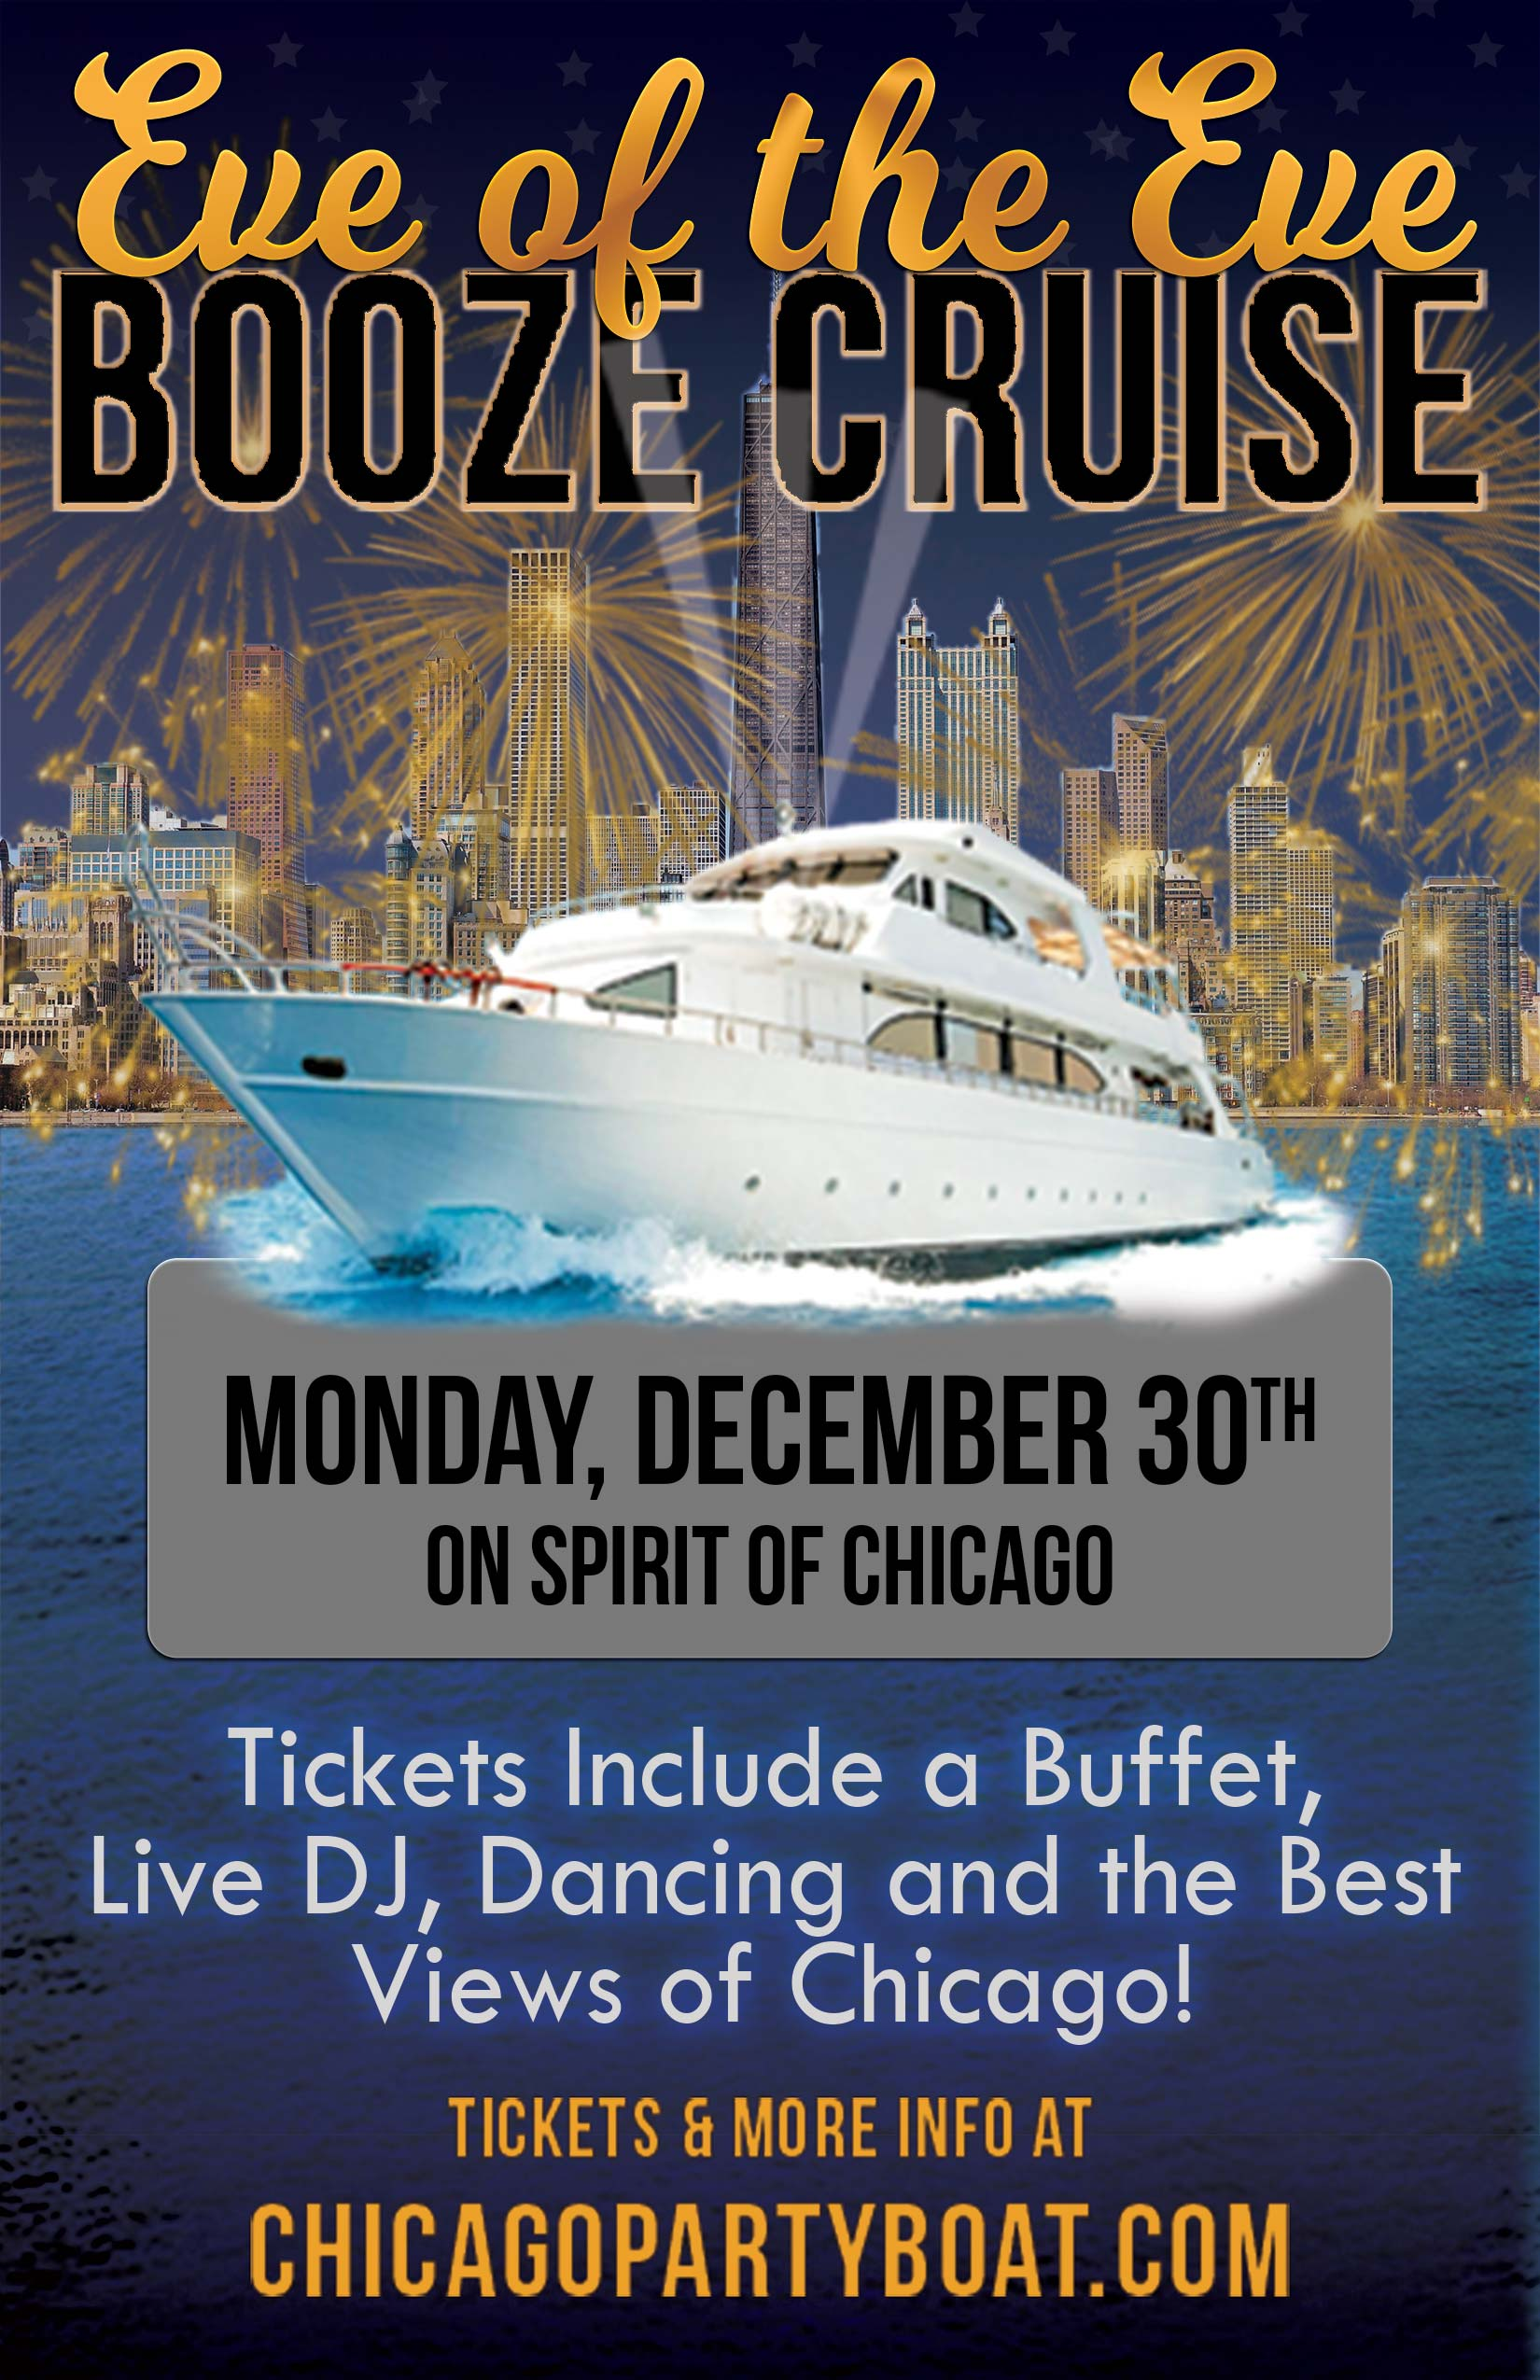 Eve of the Eve Booze Cruise on Lake Michigan - Tickets include a Free Buffet, Live DJ, Dancing, Giveaways, and the Best Views of Chicago!